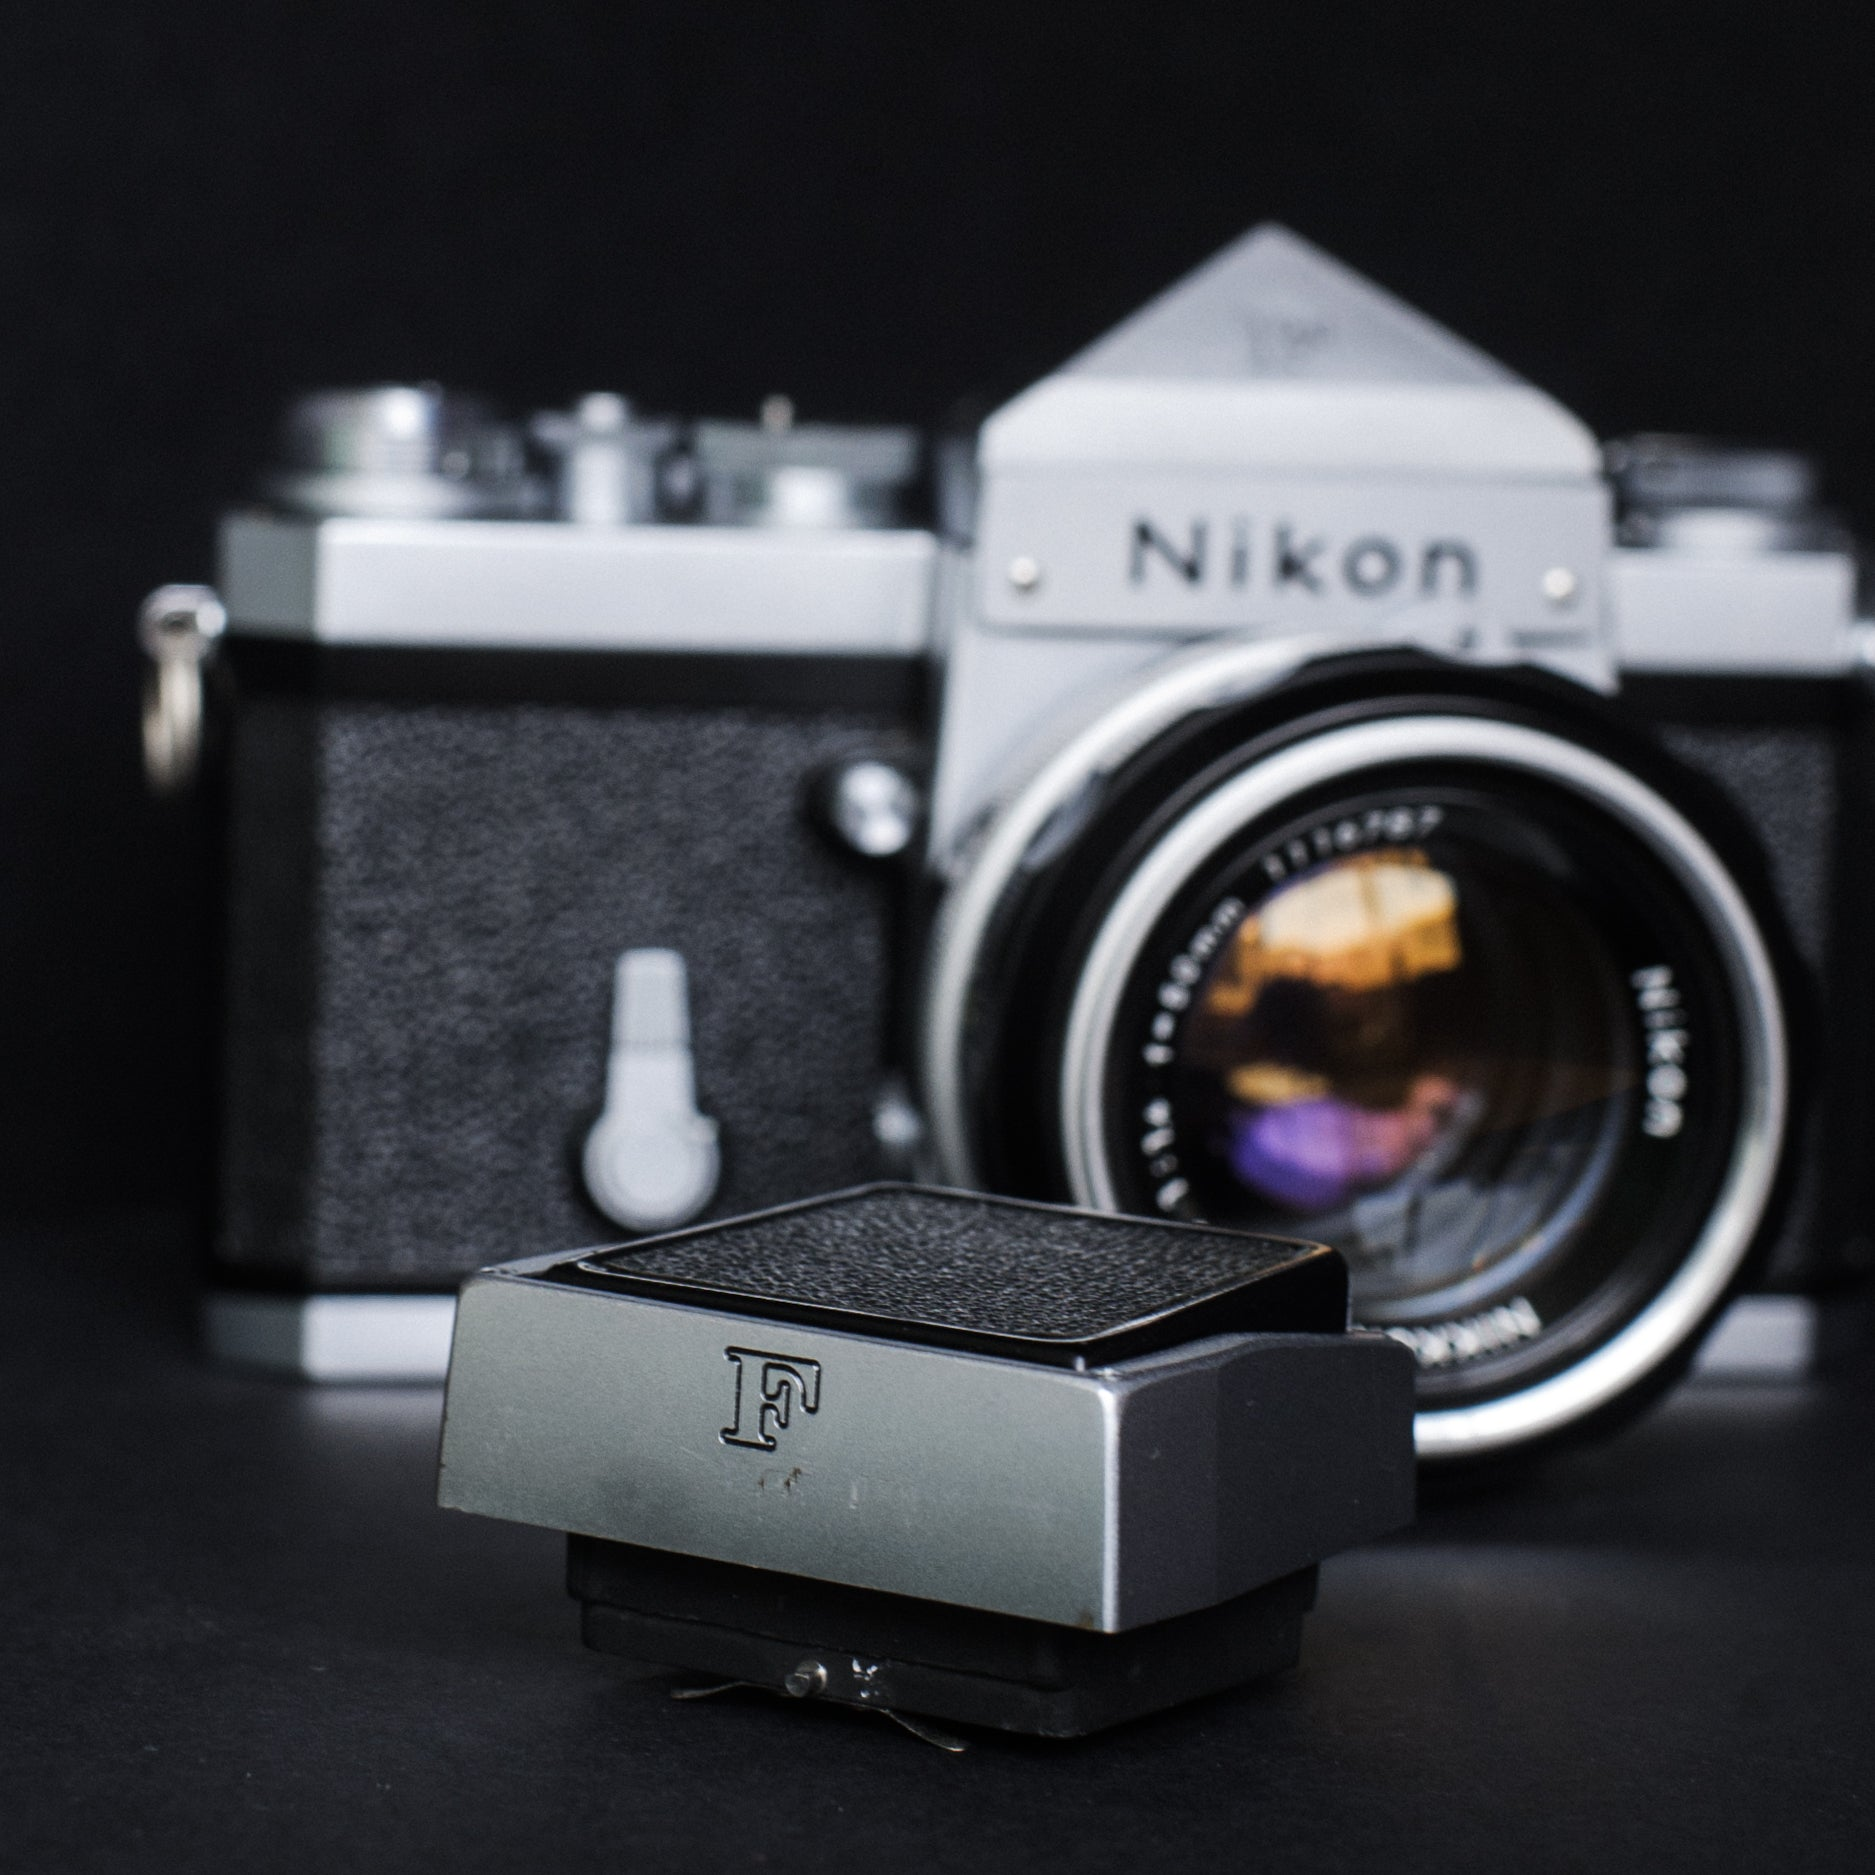 Nikon F + Nikkor-S 50mm 1.4 + waist level viewfinder